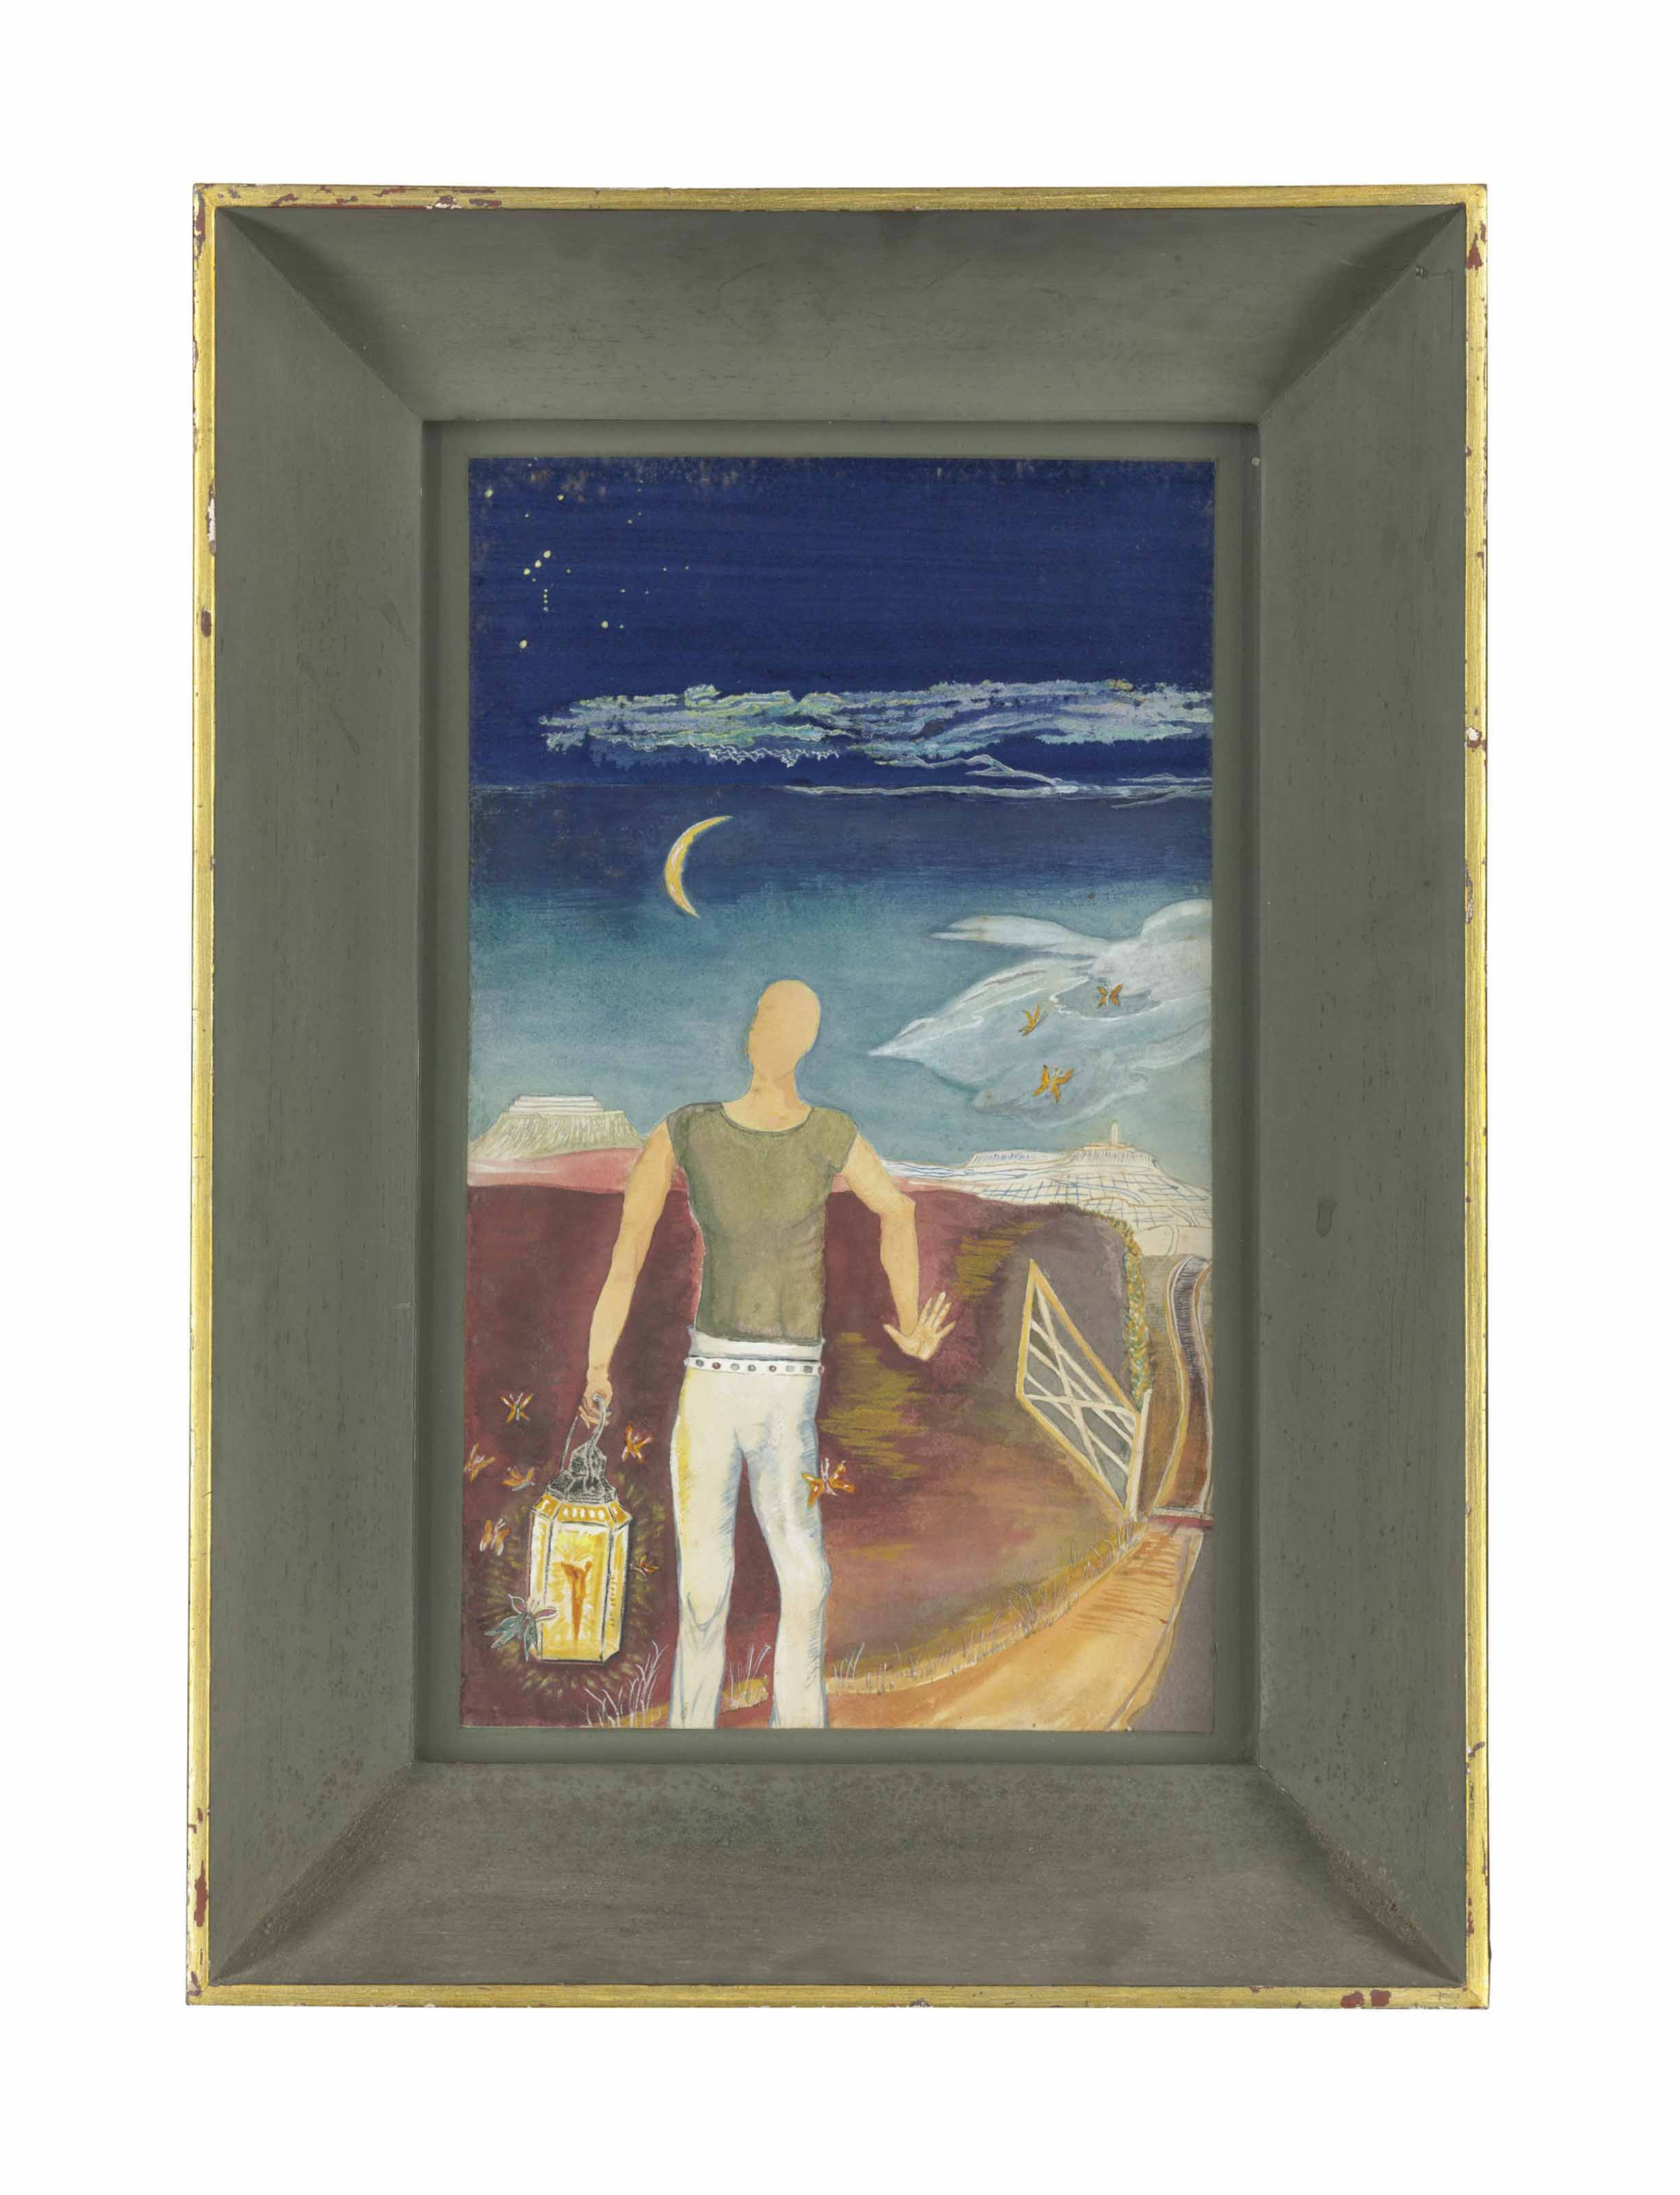 Young man carrying a lantern